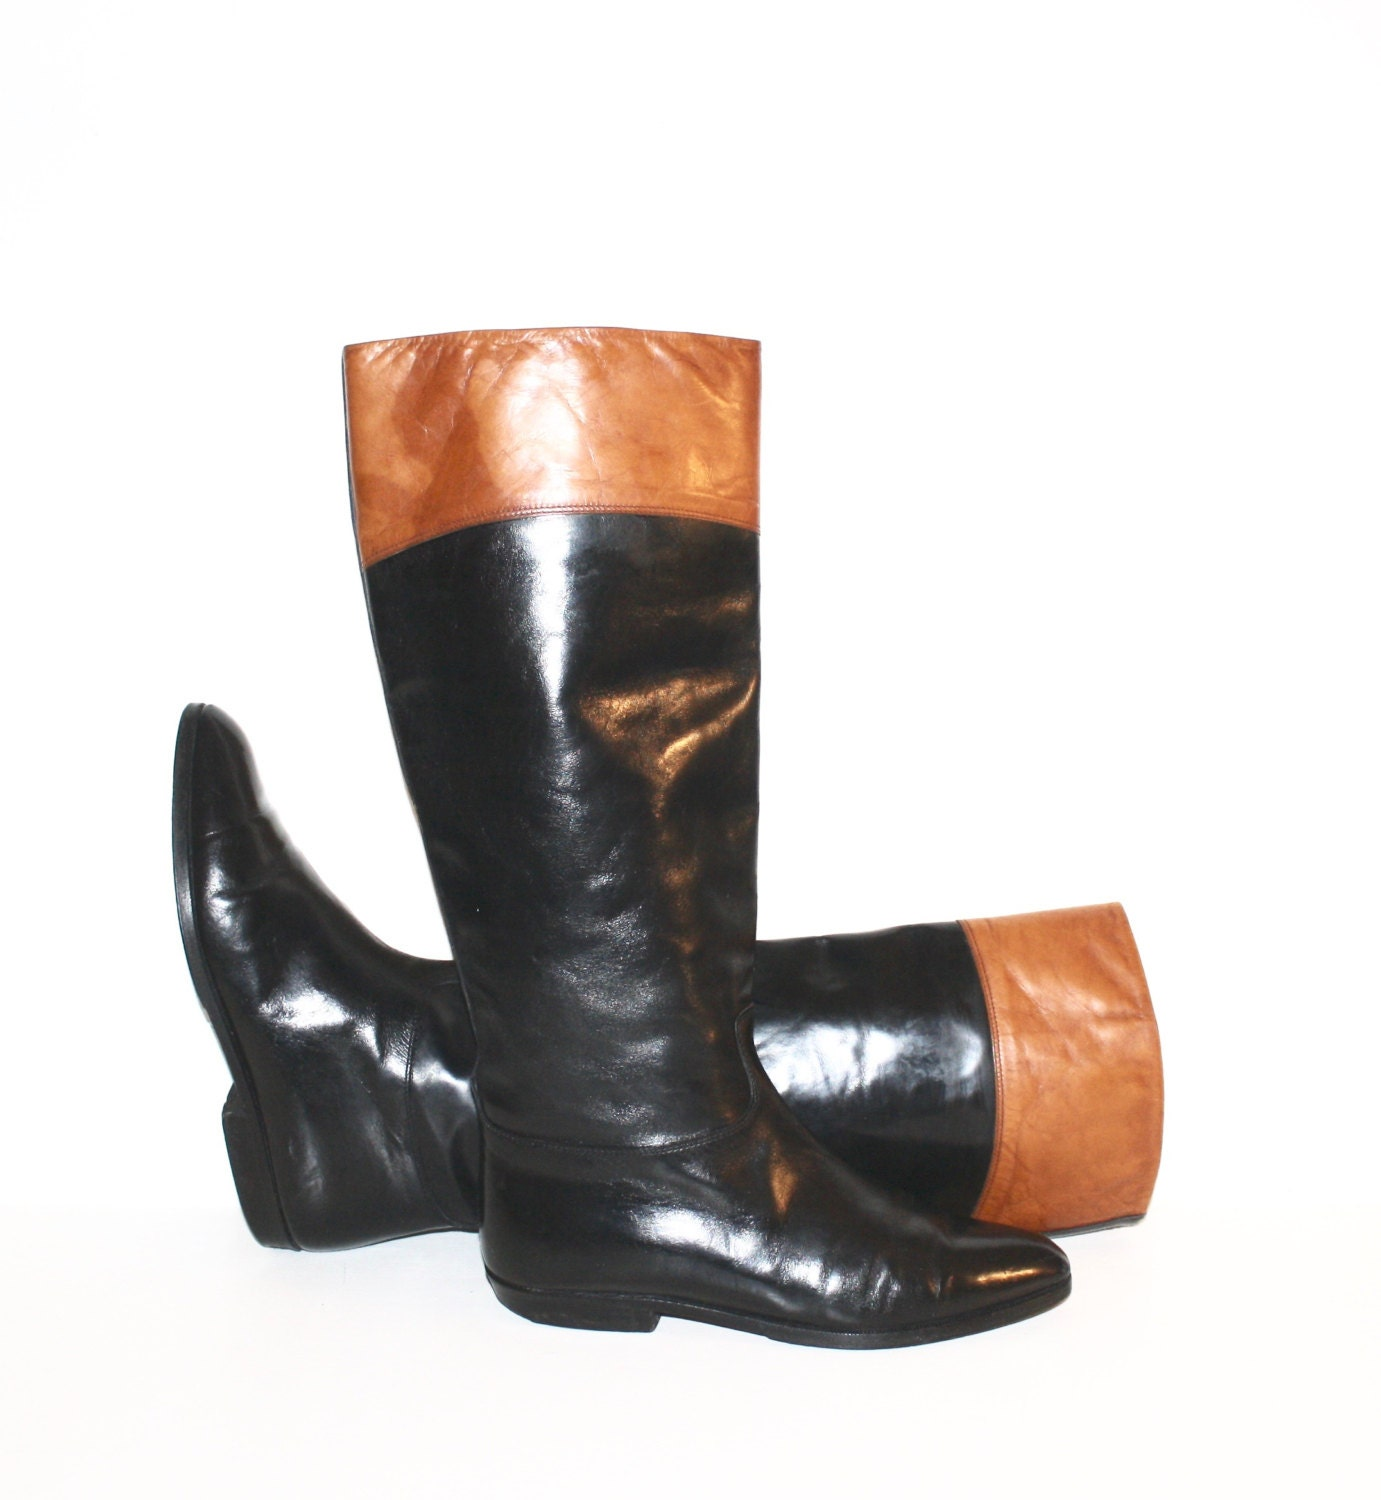 gucci vintage boots black brown leather size 38 5